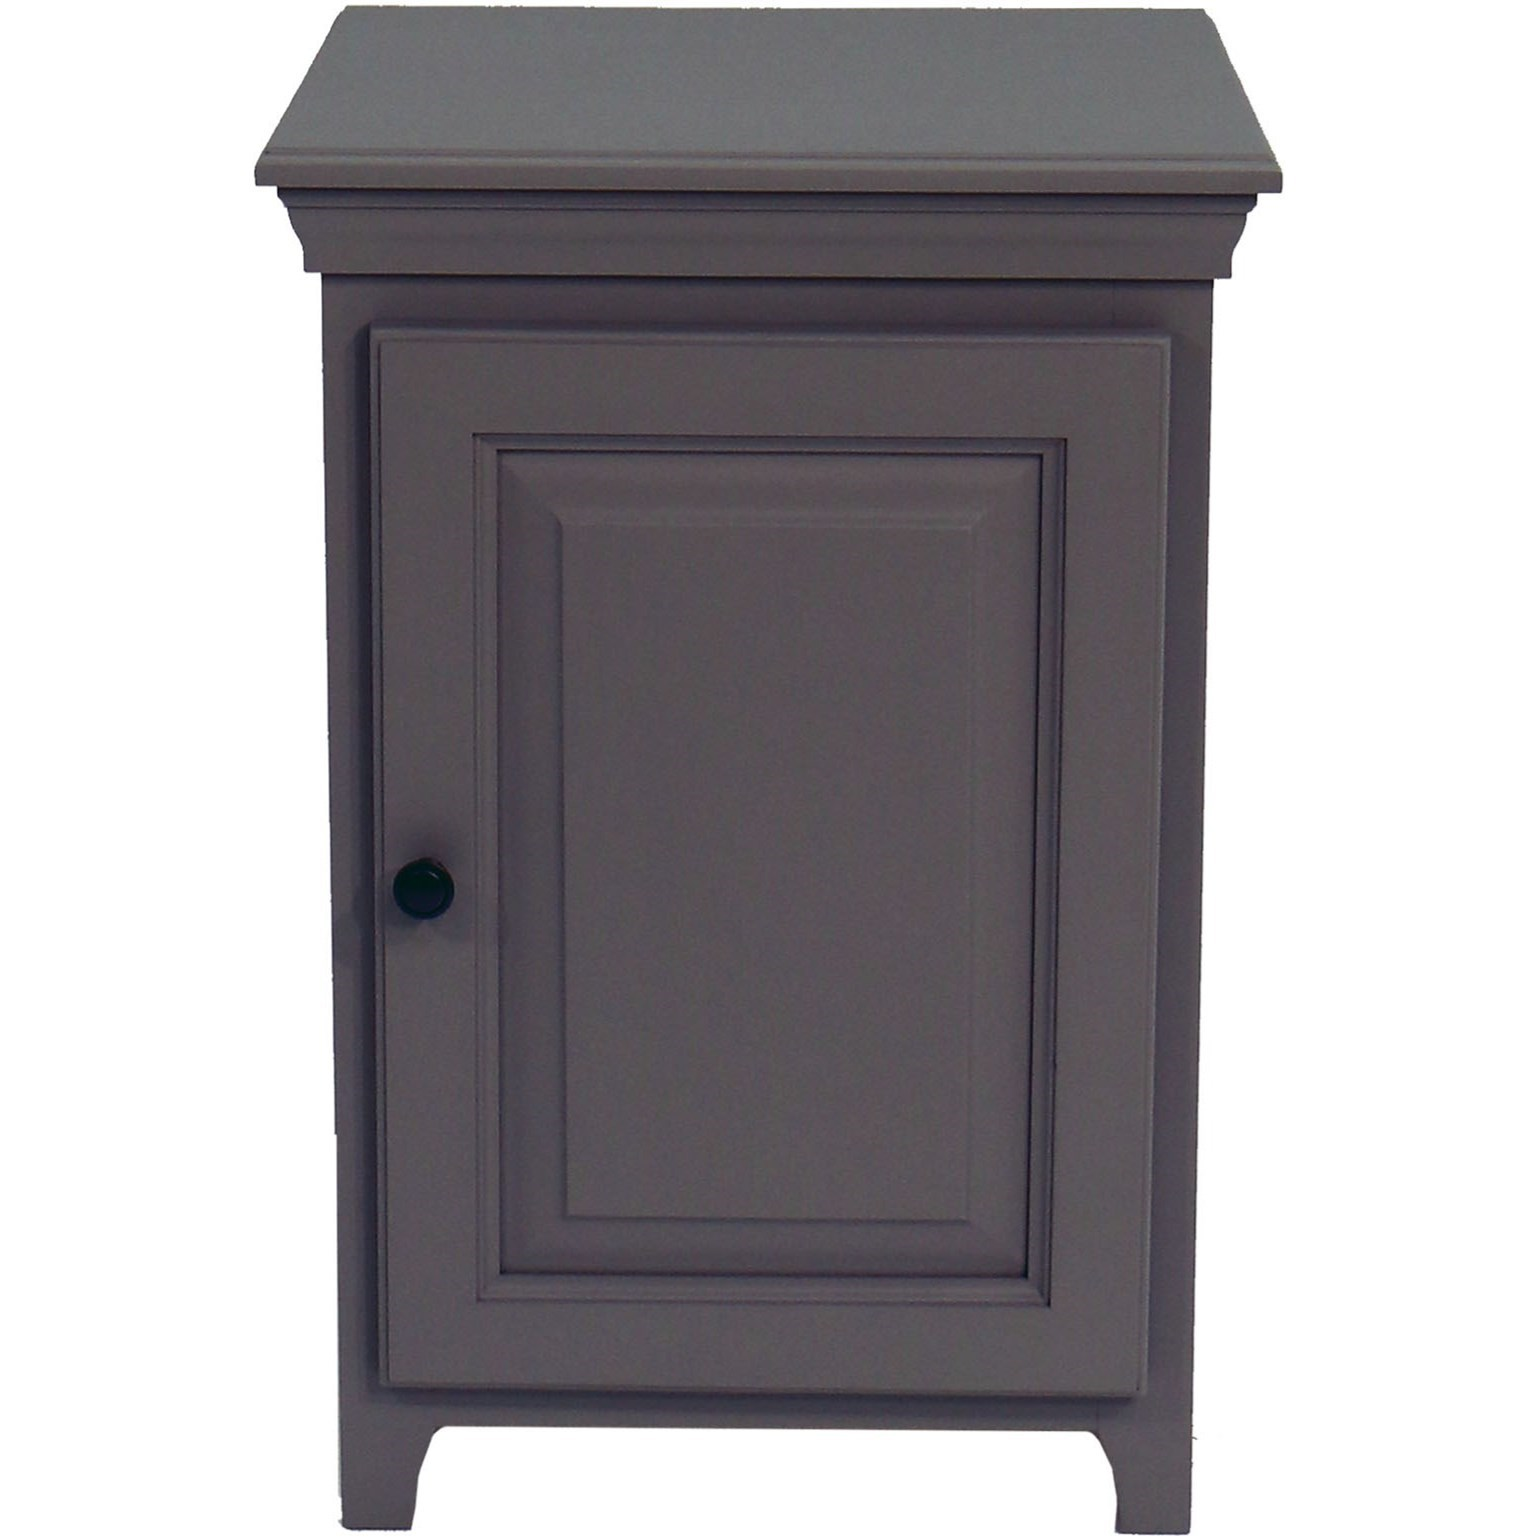 Pantries and Cabinets 1 Door Cabinet by Archbold Furniture at Mueller Furniture